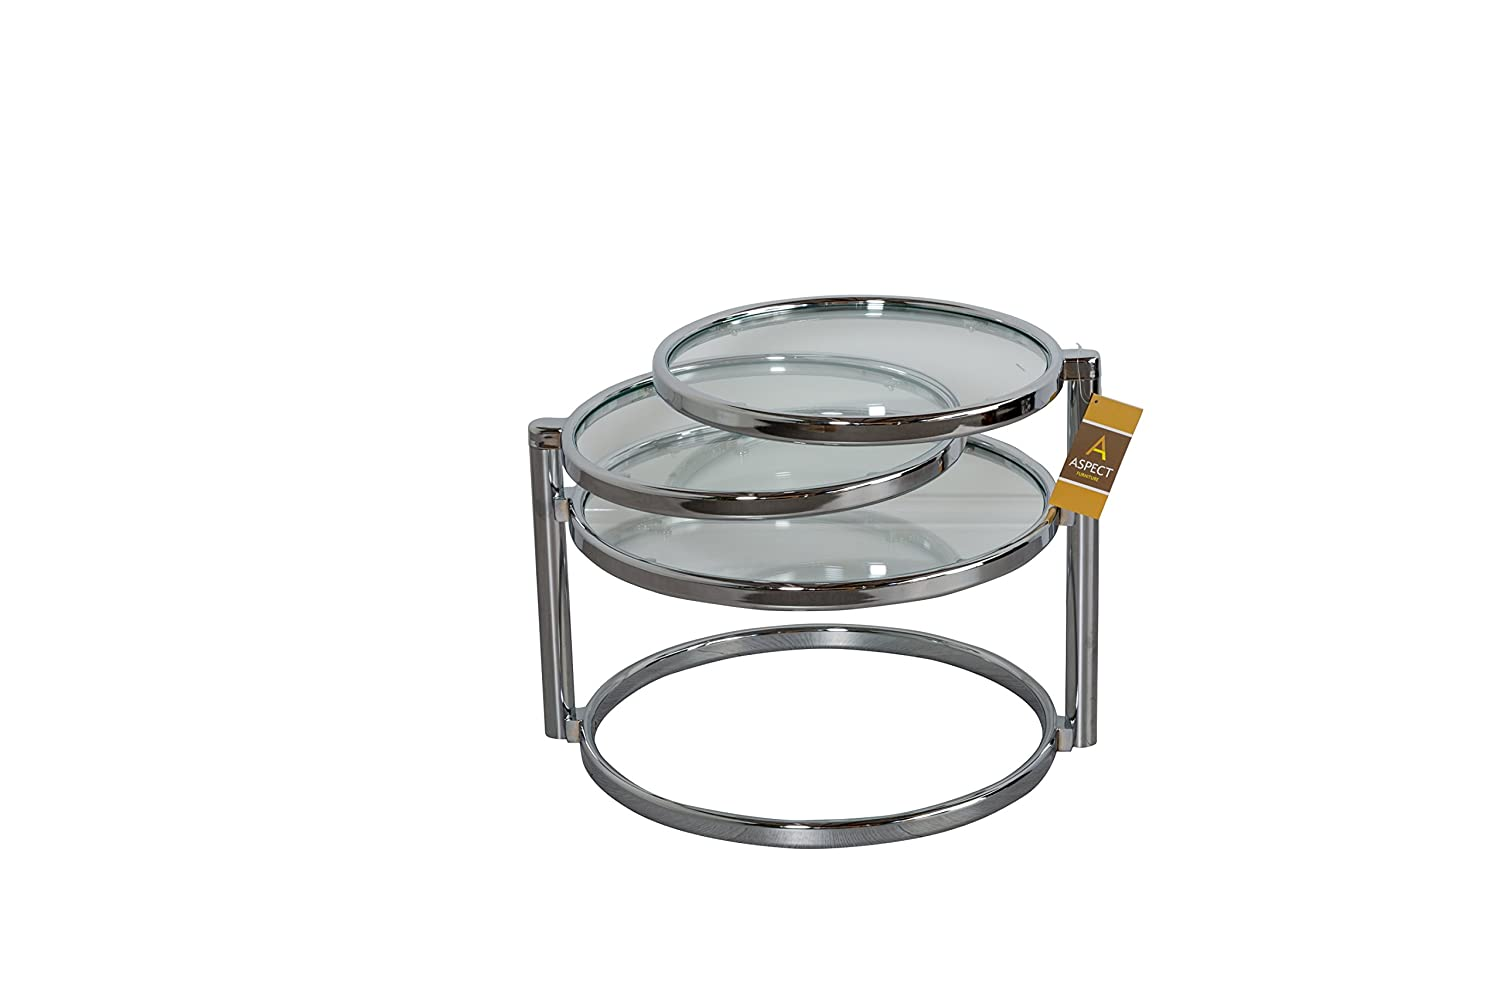 ASPECT Eternity Coffee Table with Swivel Motion, Metal, Chrome/Clear CT11C